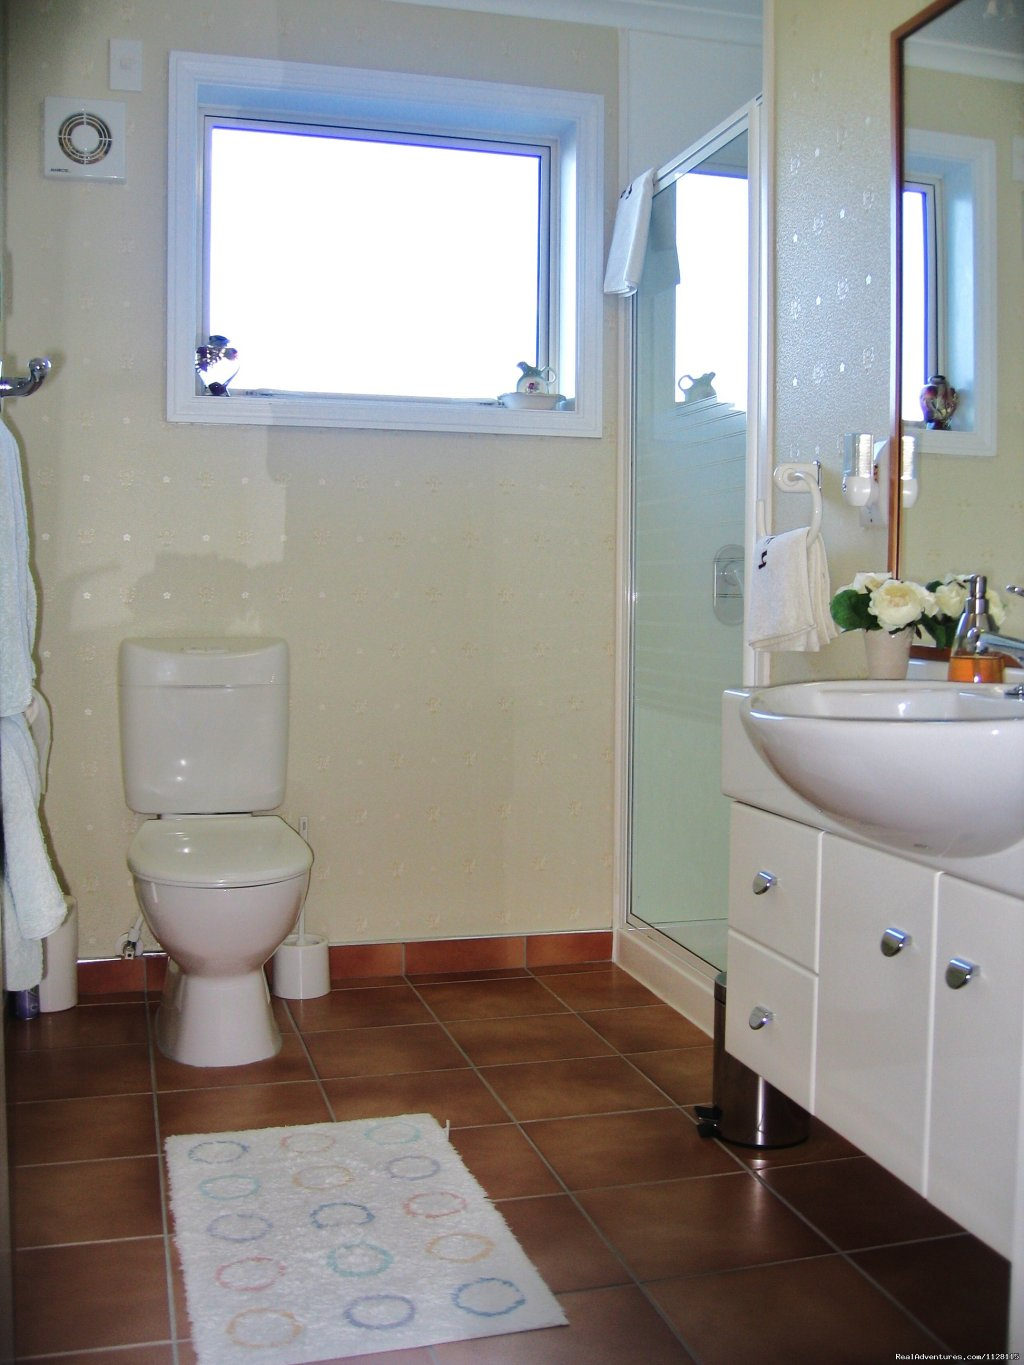 The Roses Bathroom | Image #8/8 | Romantic getaways at  Austin Heights Scenic B&B